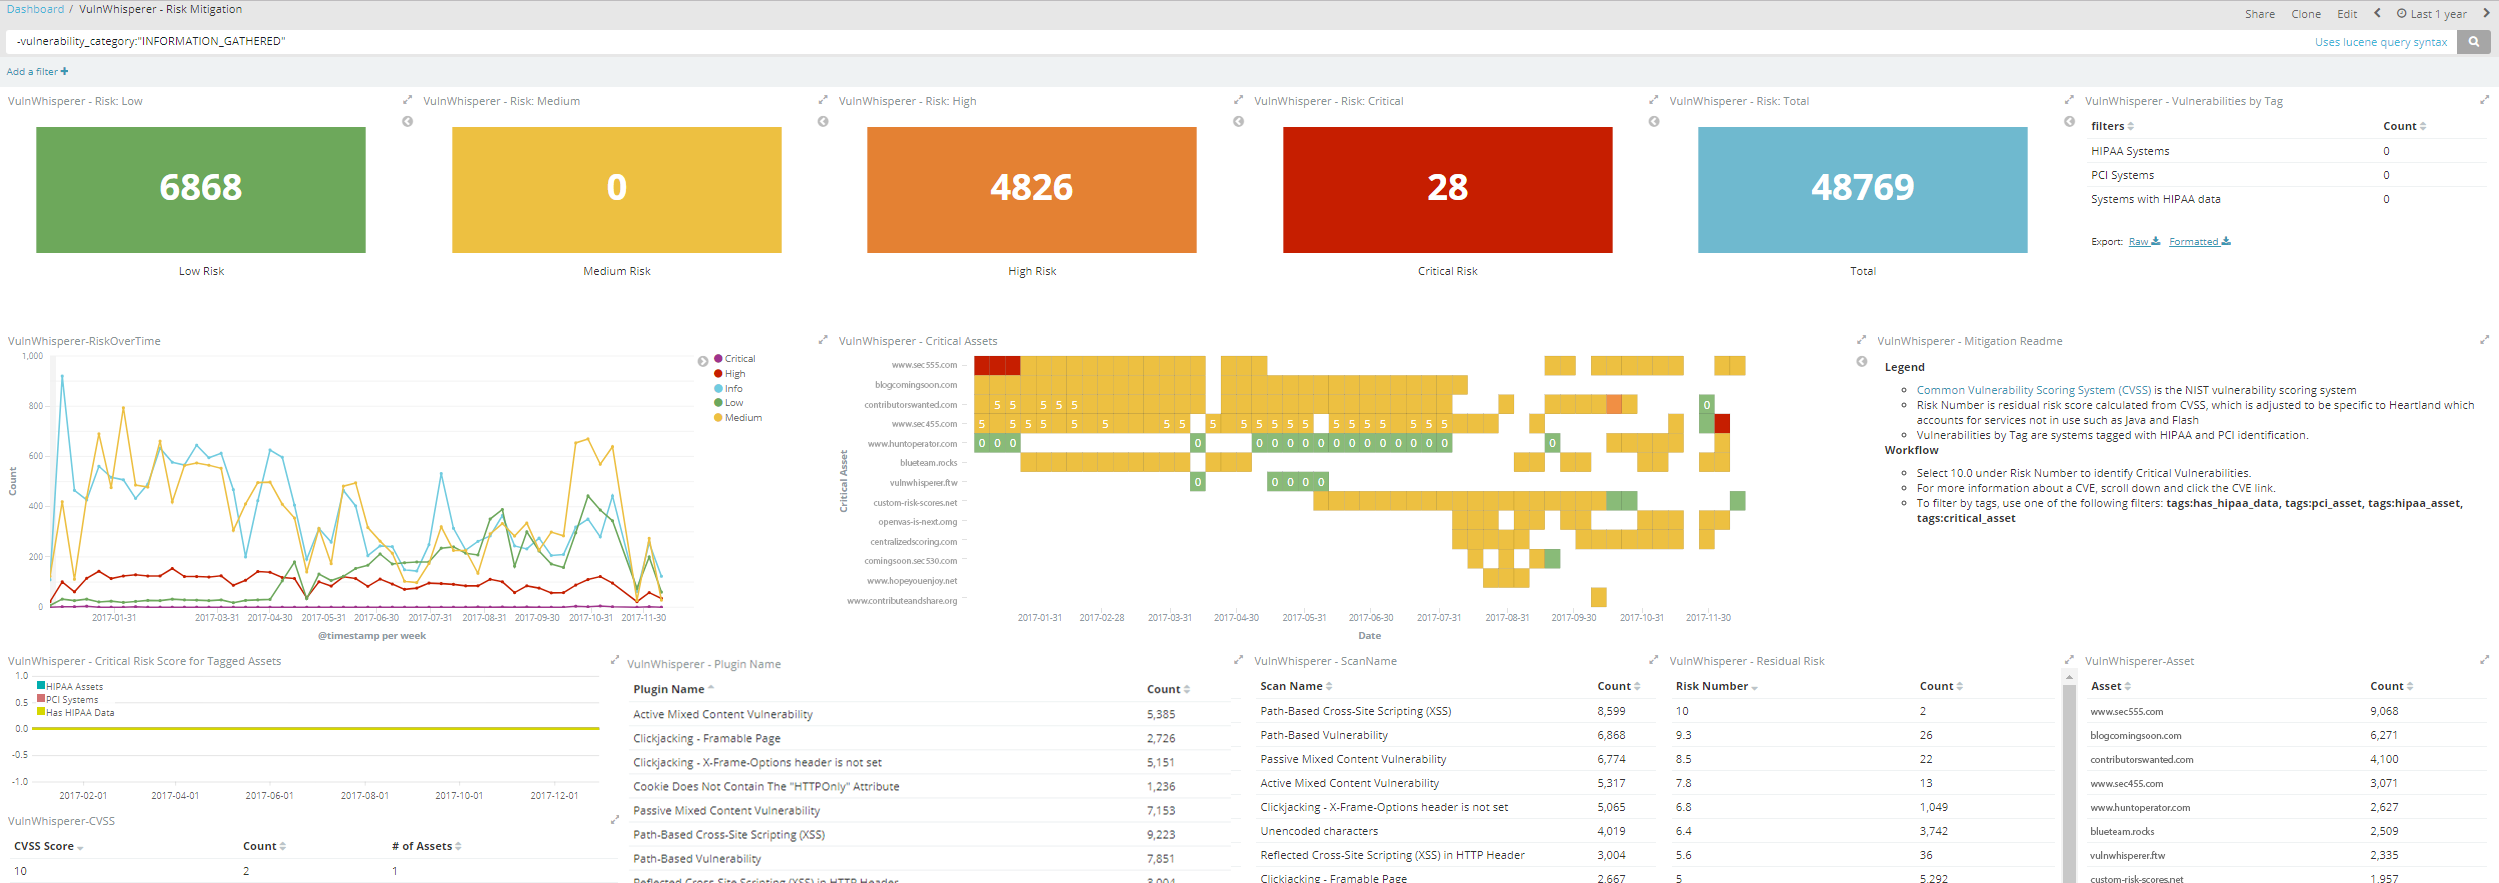 VULN_WHISP_DASHBOARD